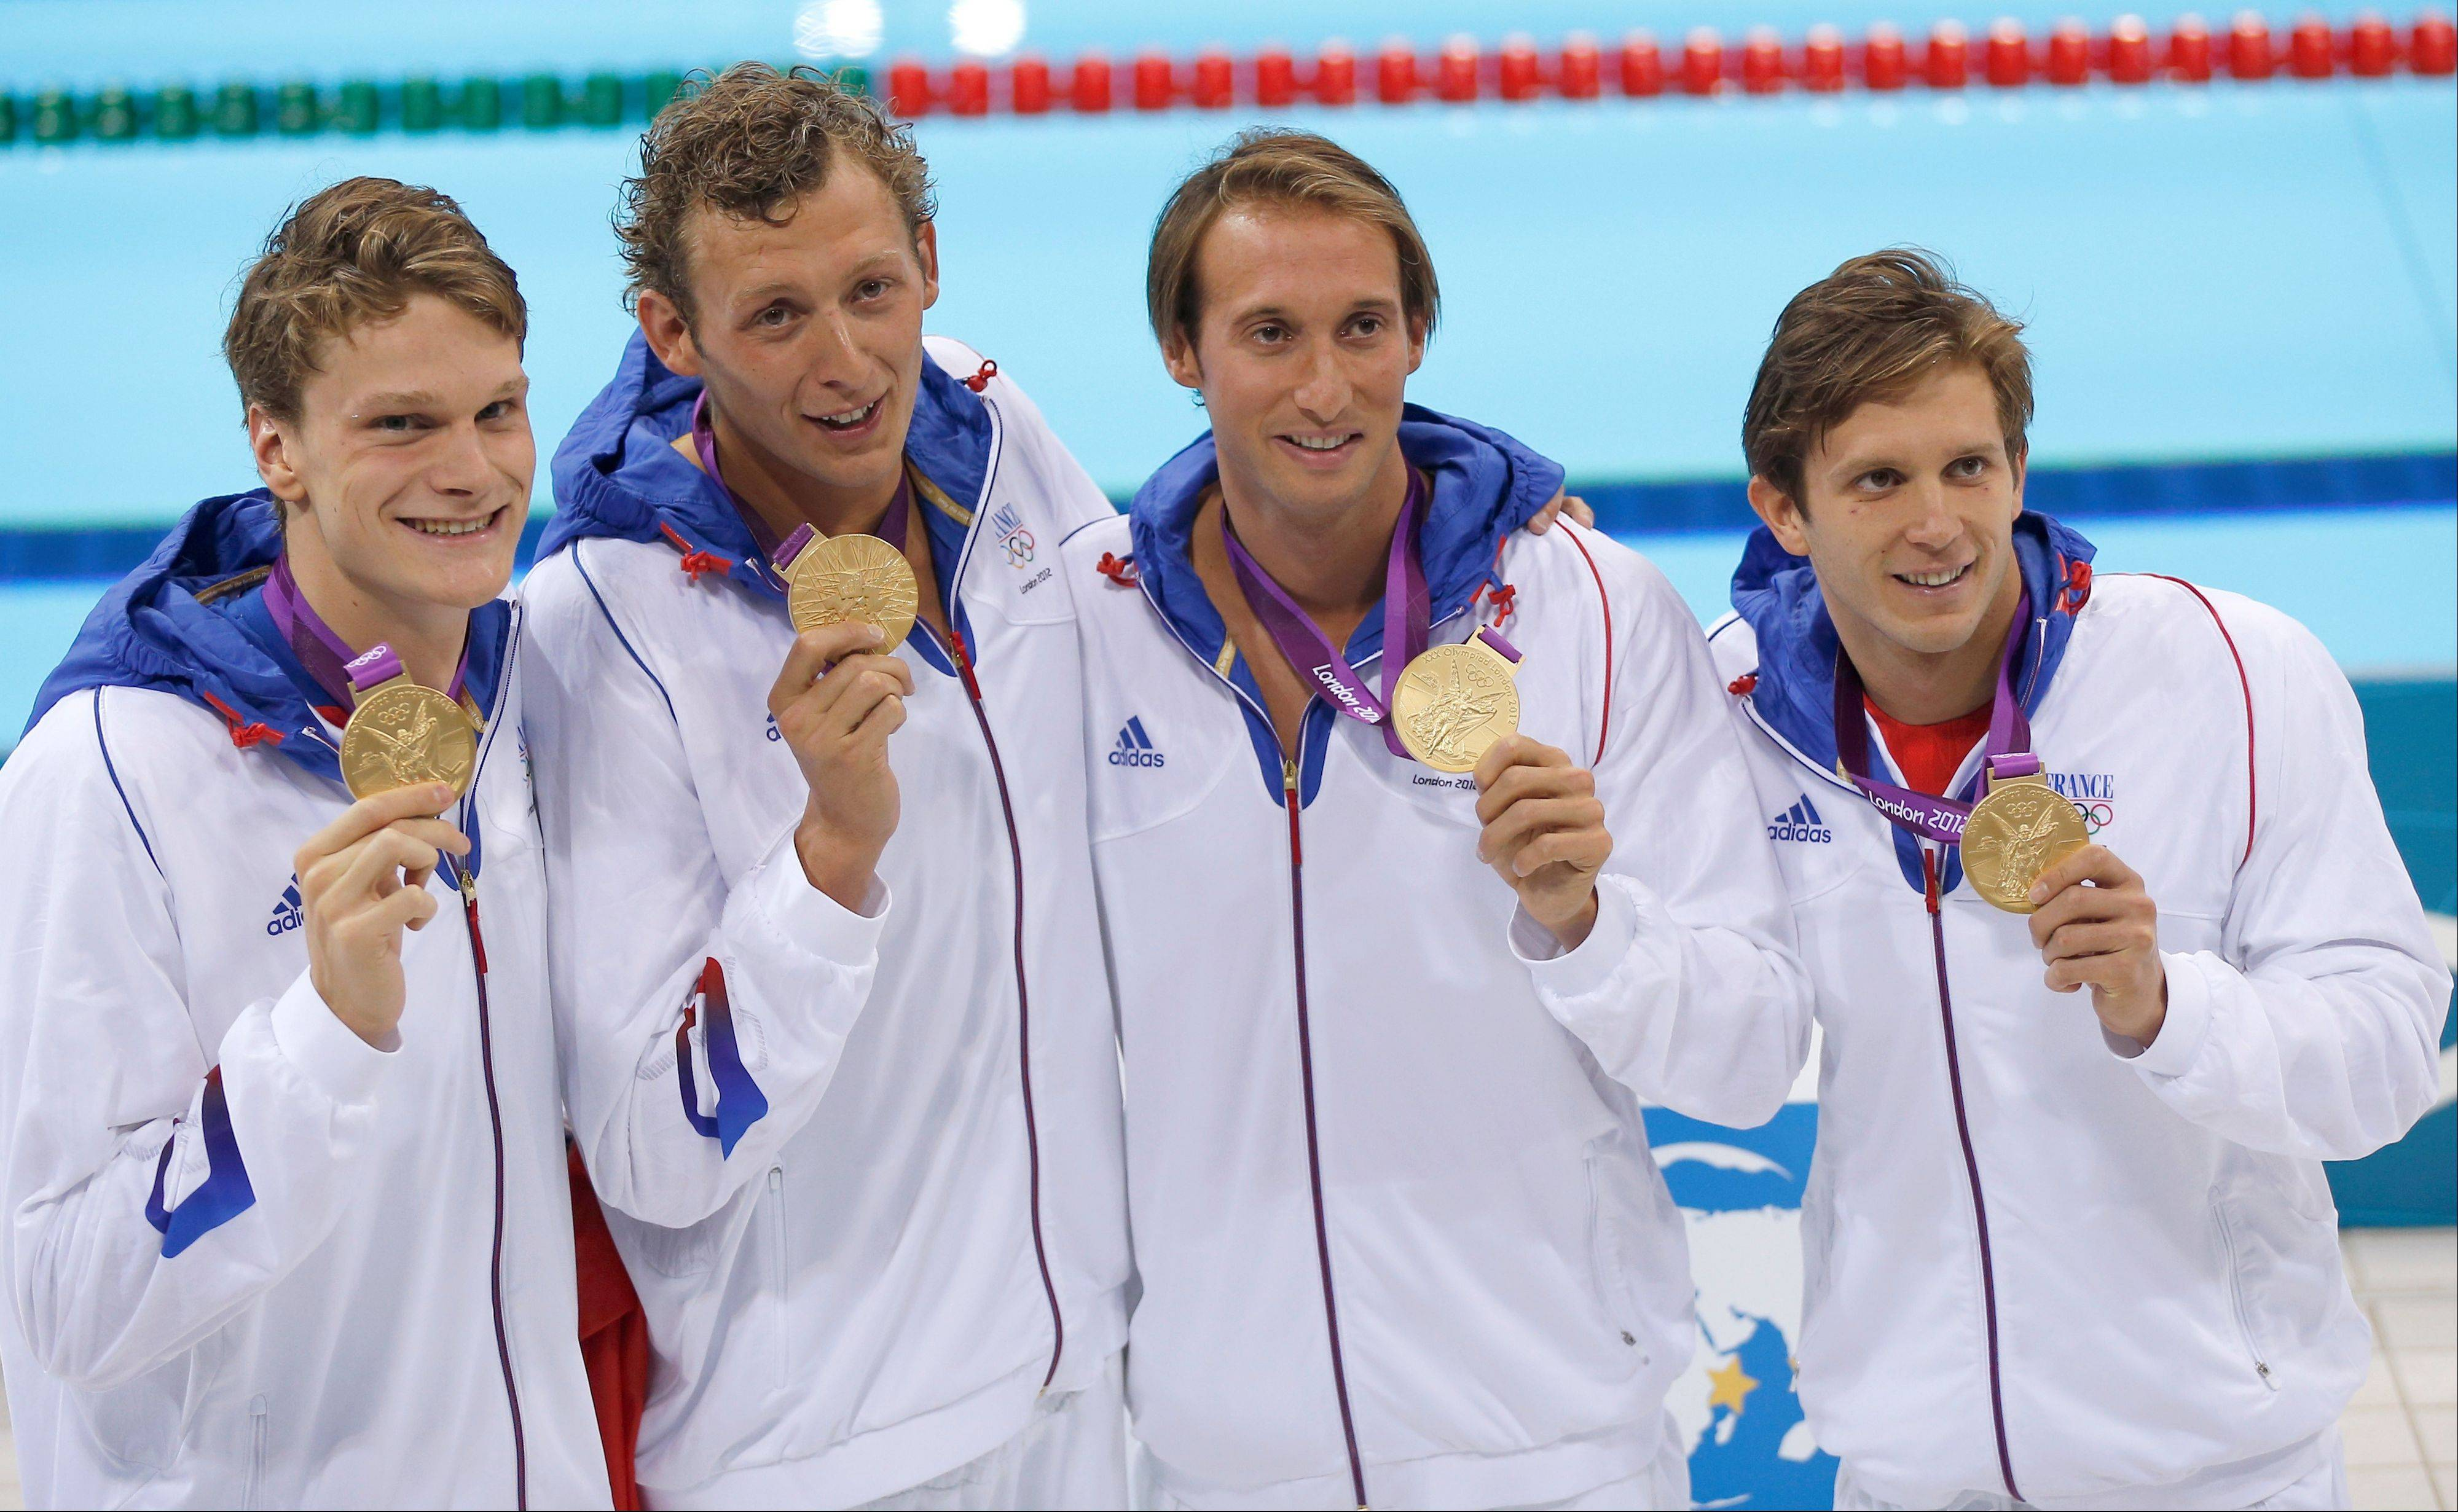 France's men's relay swim team members -- from left, Yannick Agnel, Amaury Leveaux, Fabien Gilot, and Clement Lefert -- hold their gold medals after their win in the men's 4x100-meter freestyle relay final at the Aquatics Centre in the Olympic Park during the 2012 Summer Olympics in London.